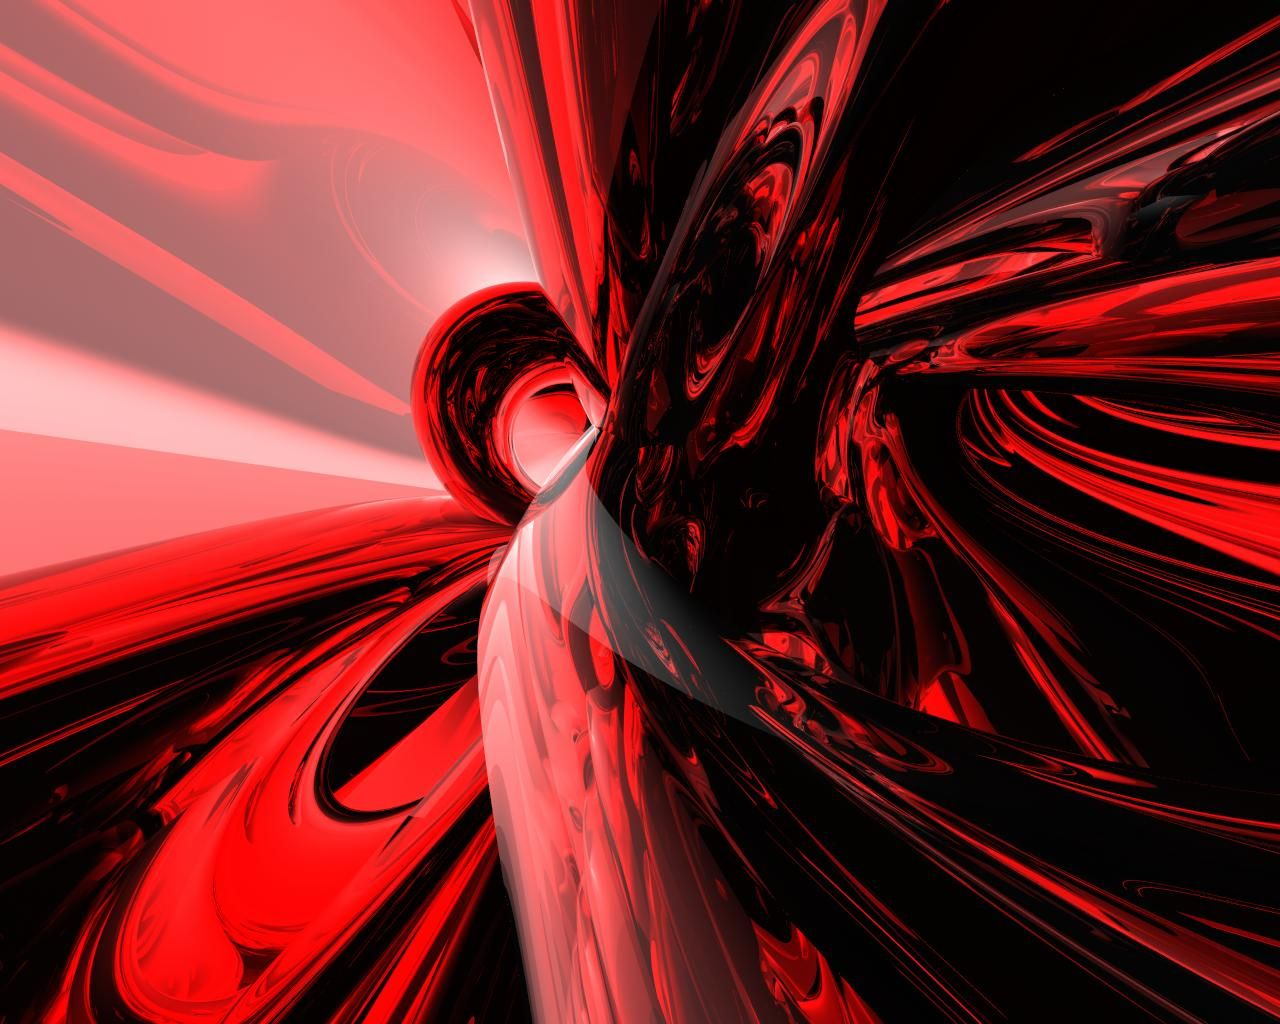 art+abstract+art Red Abstract Art Paintings 2012 Hd